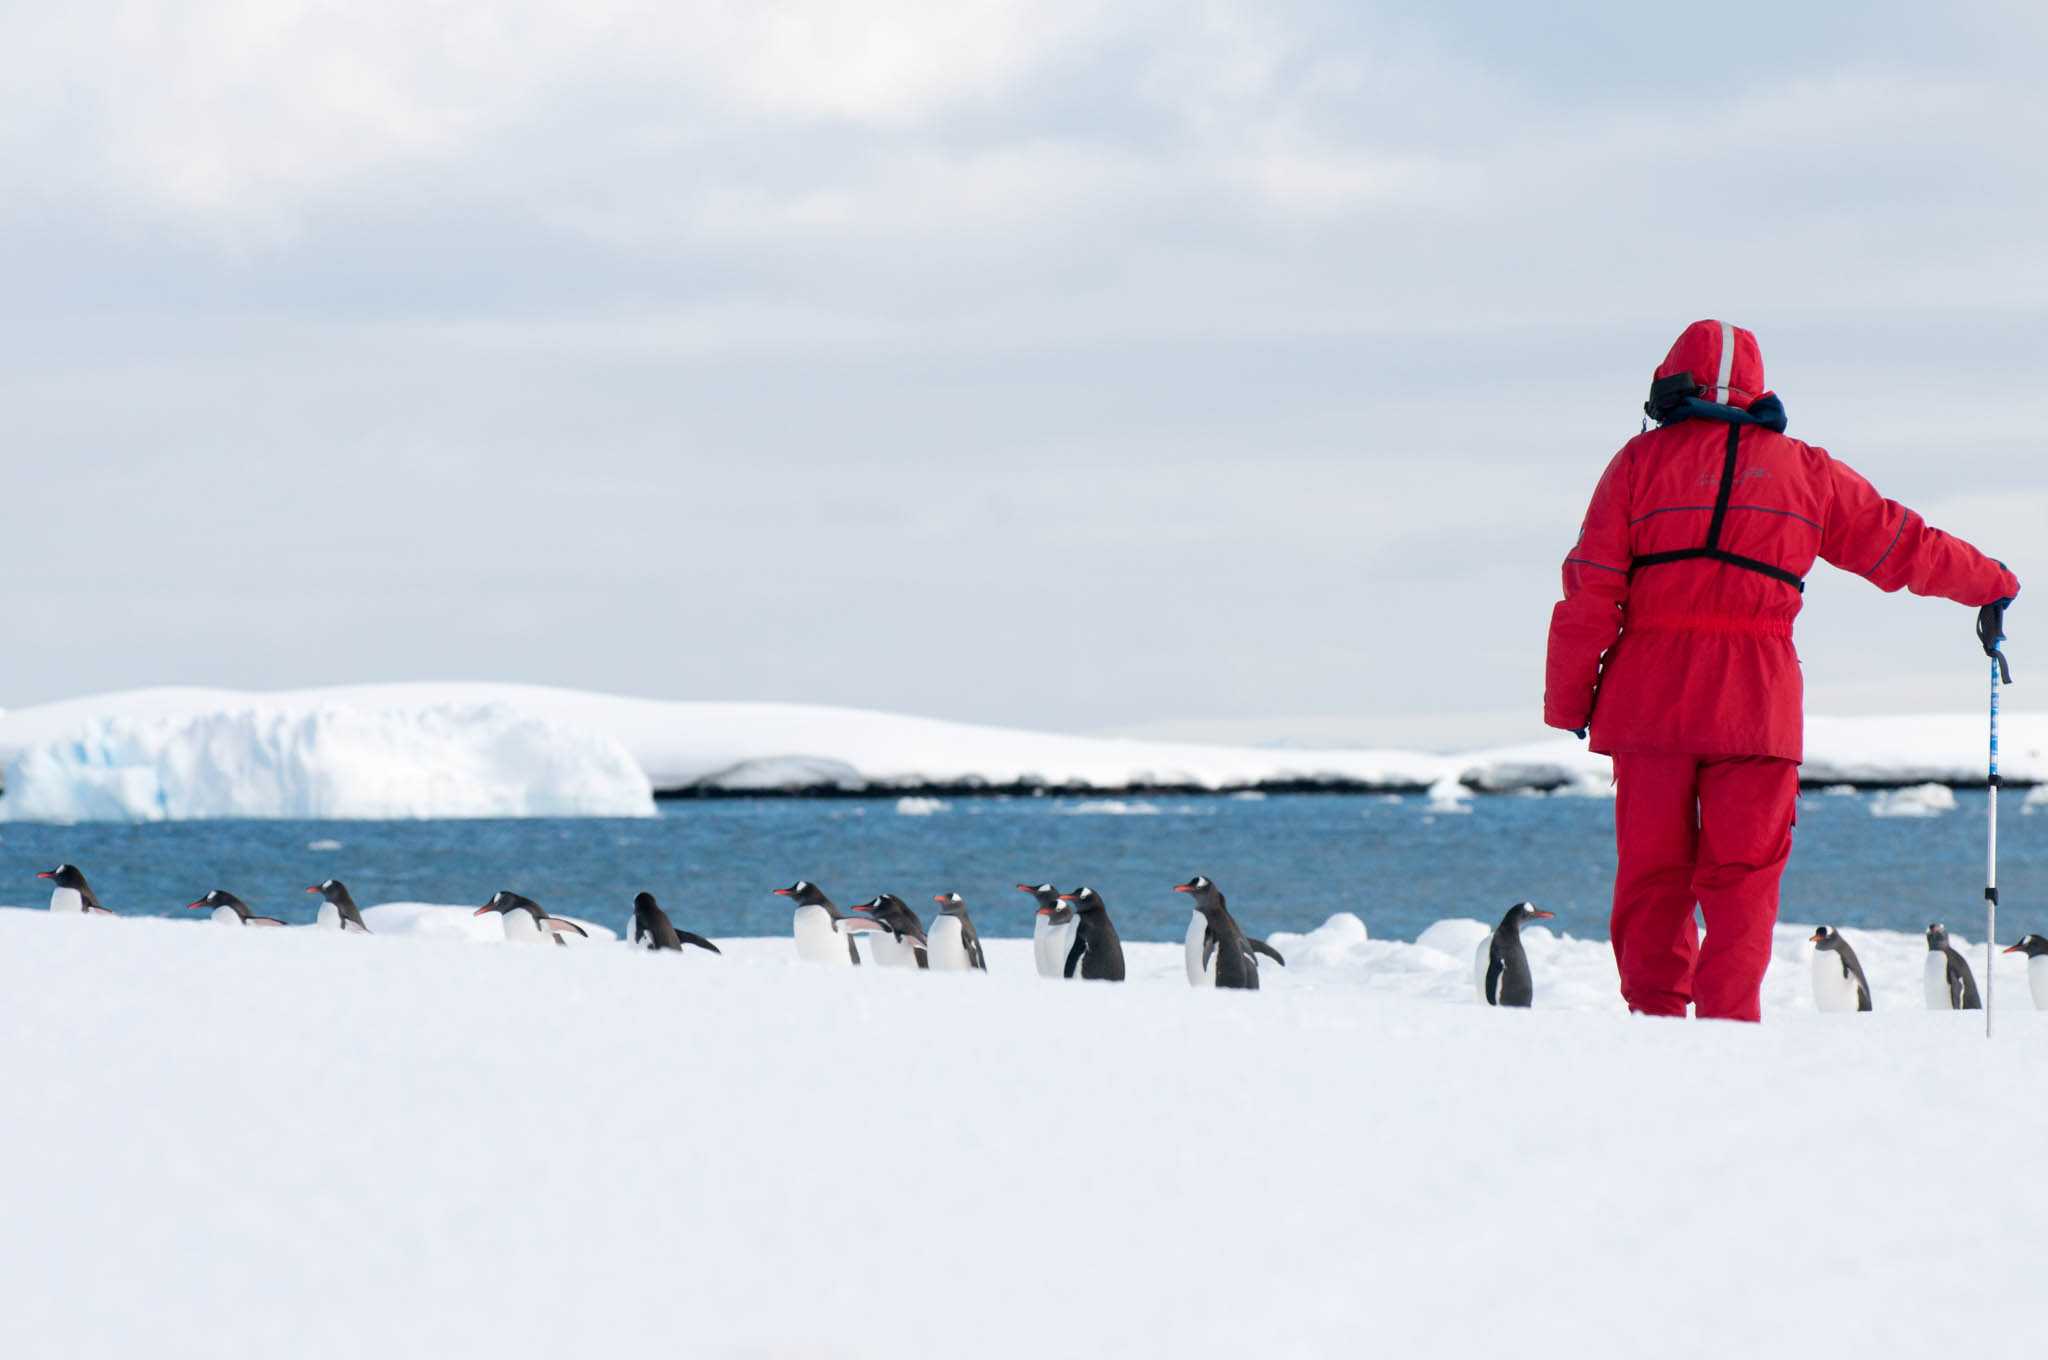 Antarctic wildlife photography, such as photographing penguins on the ice is a wonderful way to experience Antarctica. One Ocean Expeditions offers guided photography courses on many of its voyages. Image: Daisy Gilardini